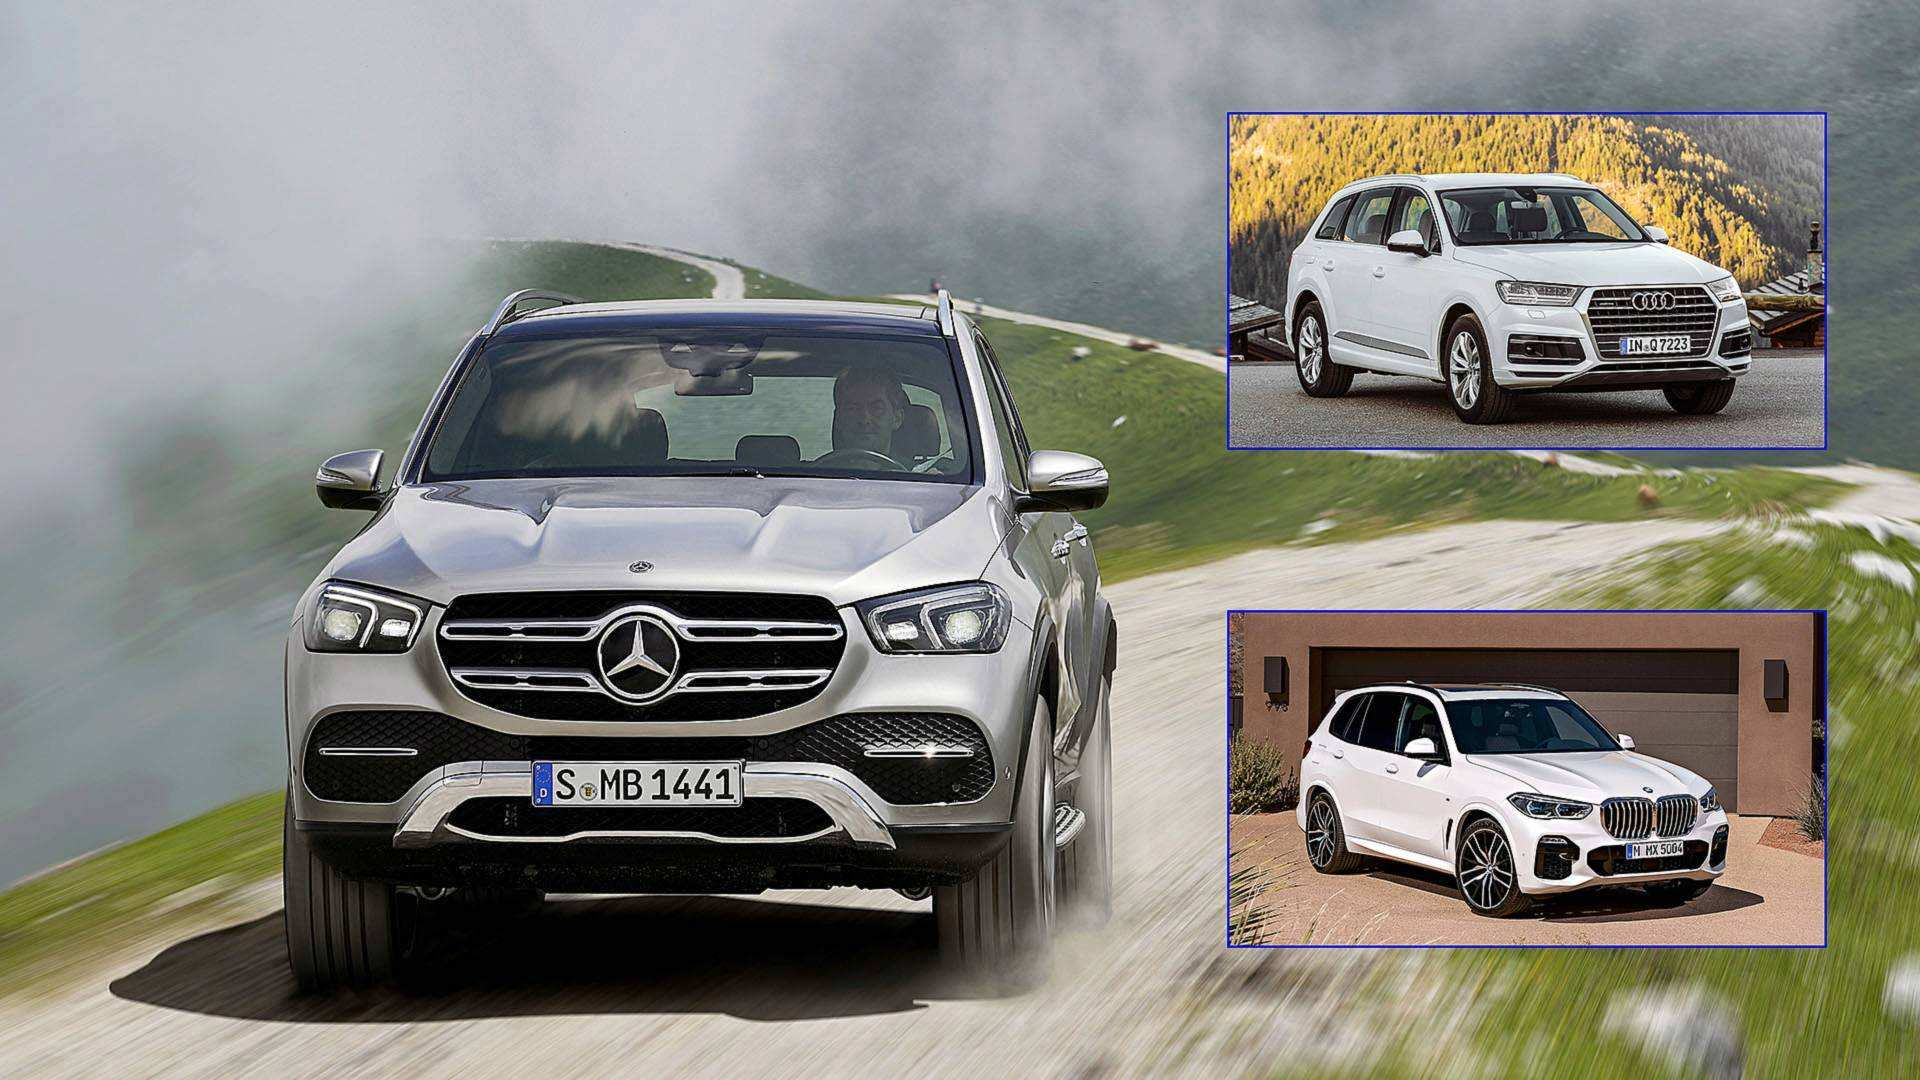 93 Great 2020 Mercedes Gle Vs BMW X5 History with 2020 Mercedes Gle Vs BMW X5